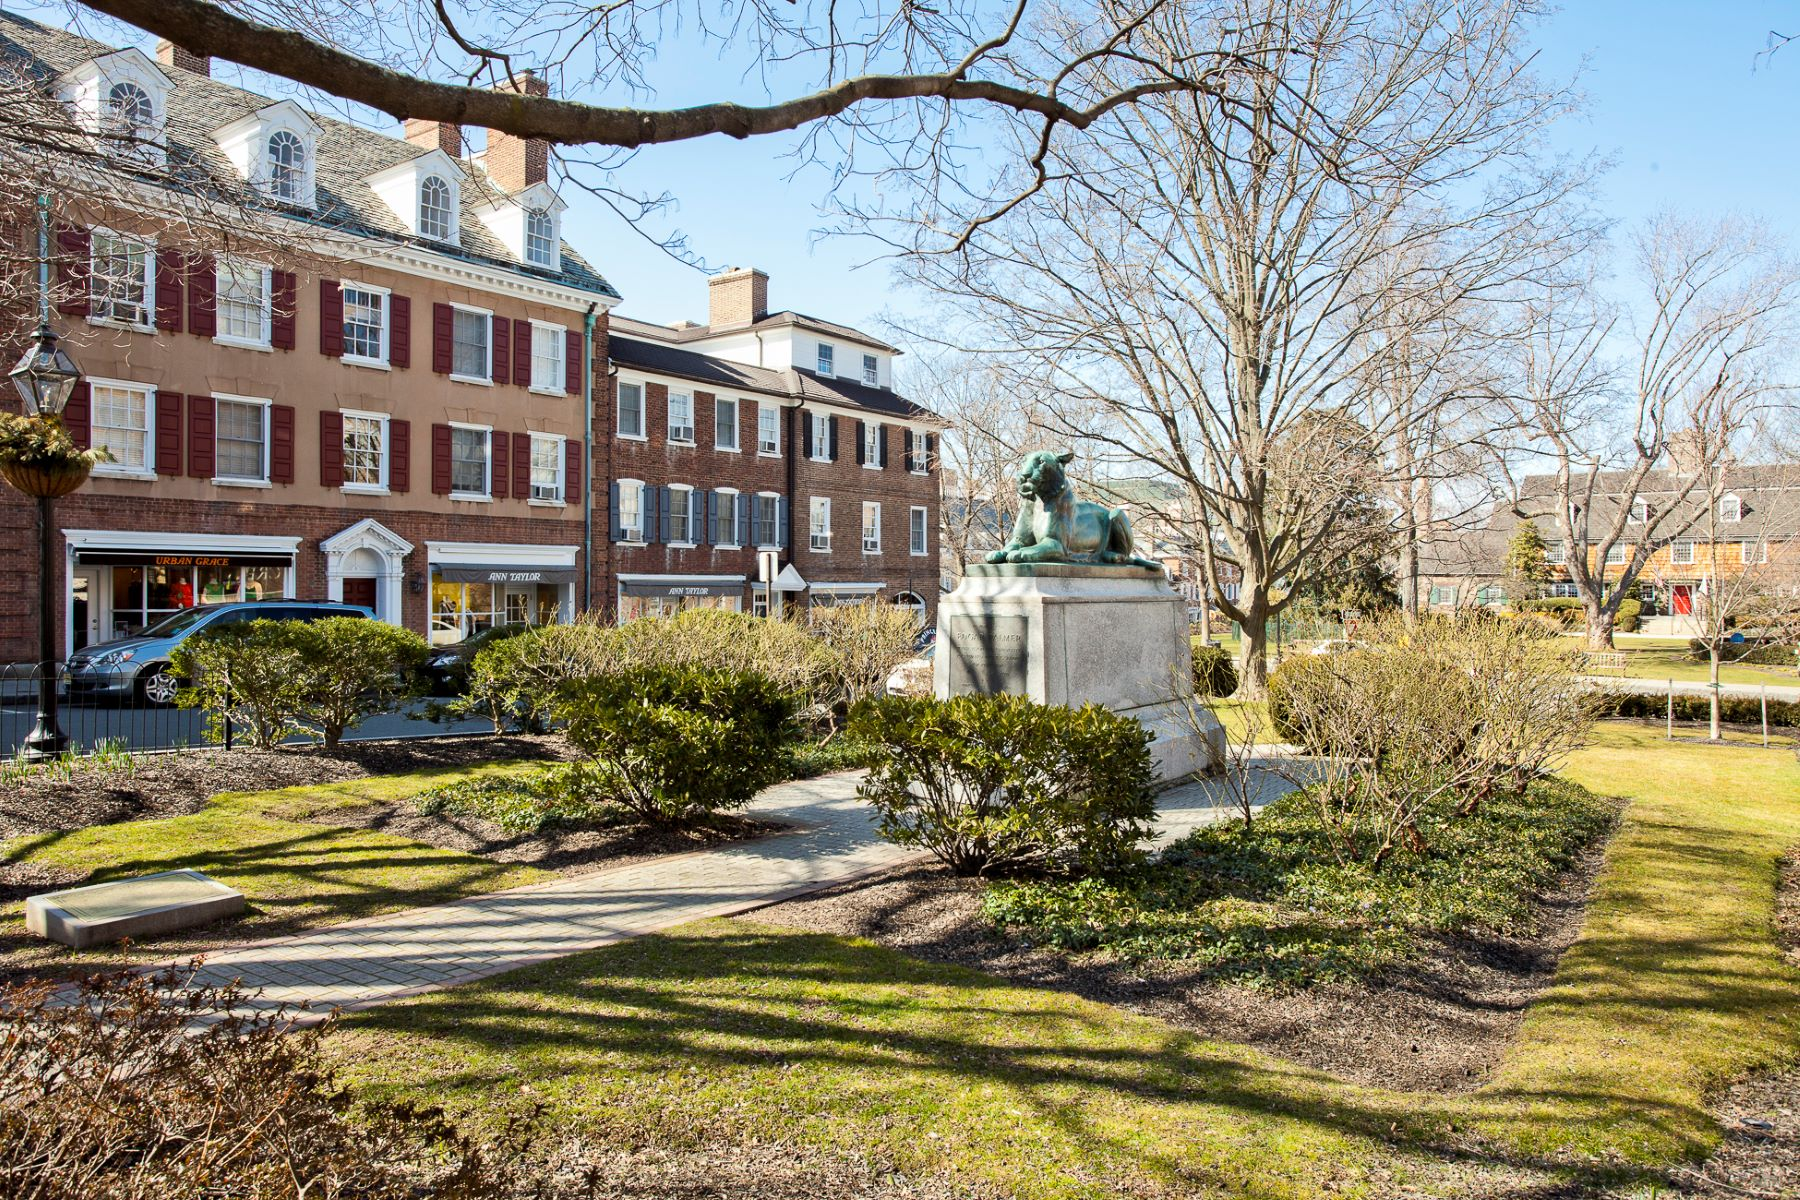 Additional photo for property listing at Welcome to 30 Maclean! 30 Maclean Street Unit 7, Princeton, New Jersey 08542 United States